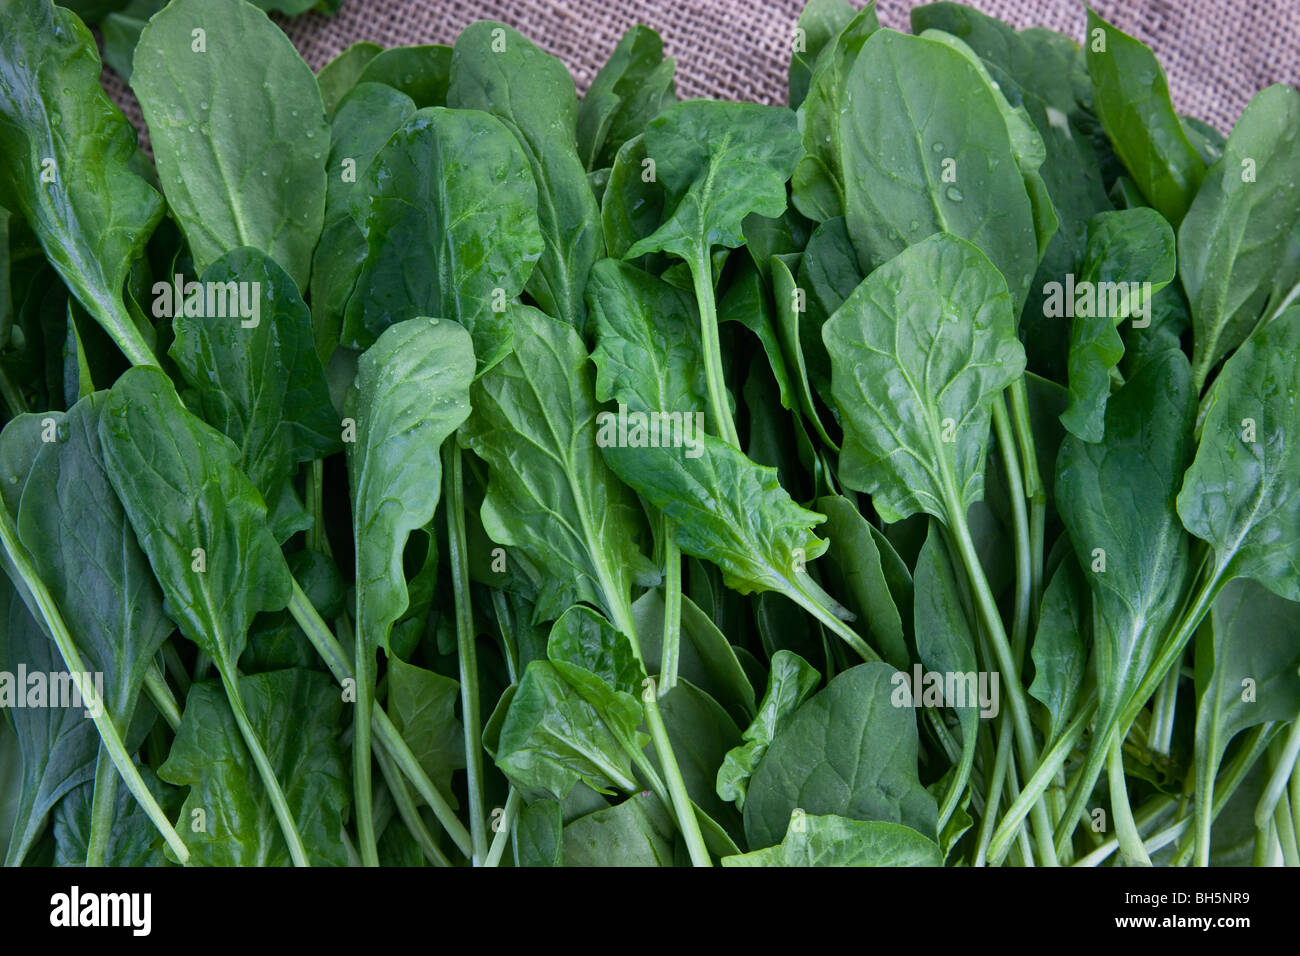 Spinach 'Baby Spinach' (Spinacia oleracea). - Stock Image